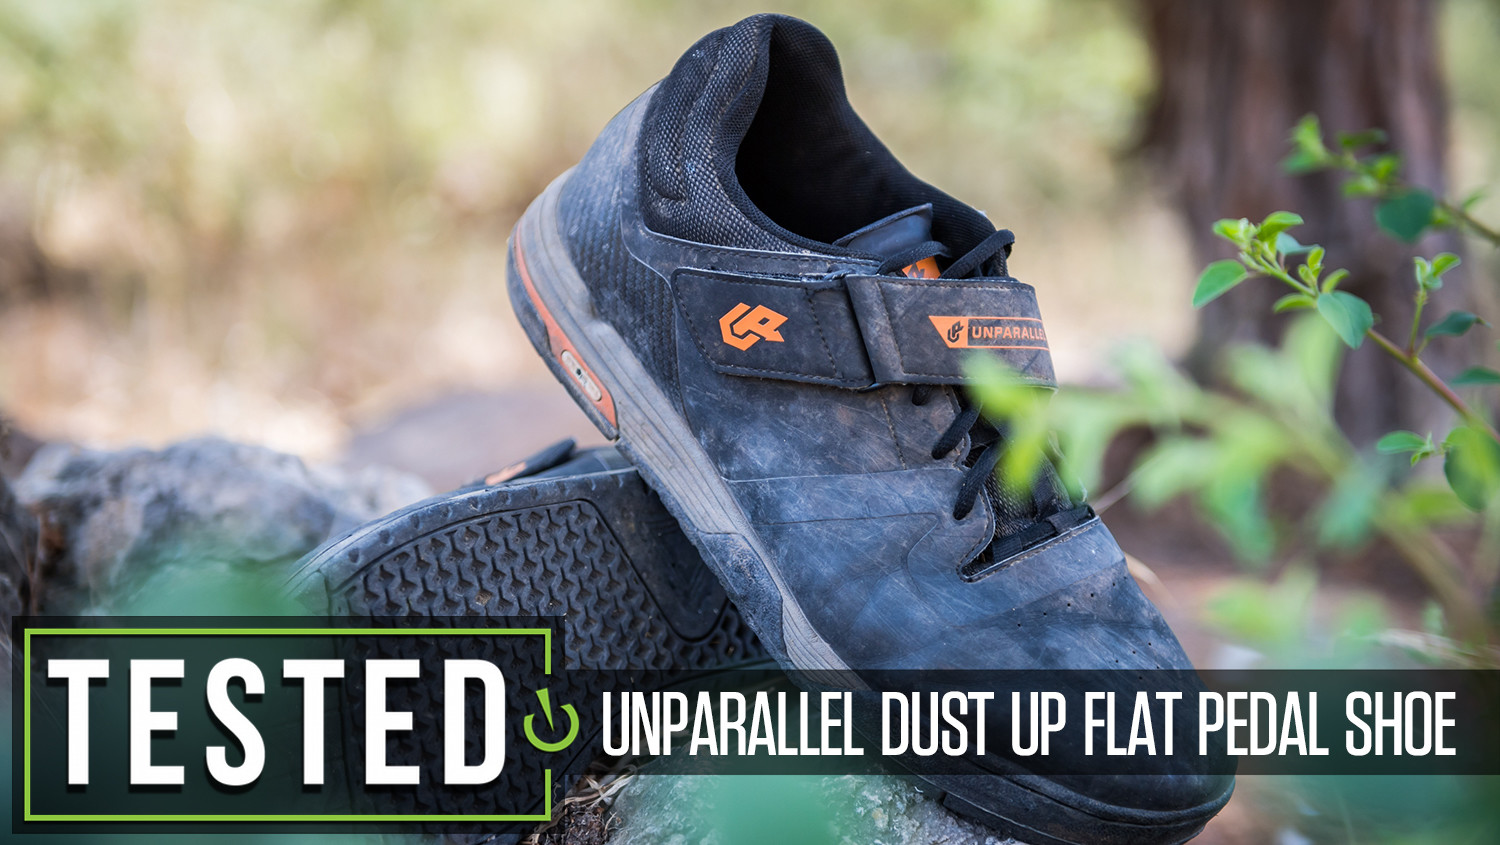 Tested: Unparallel Dust Up Flat Pedal Shoe